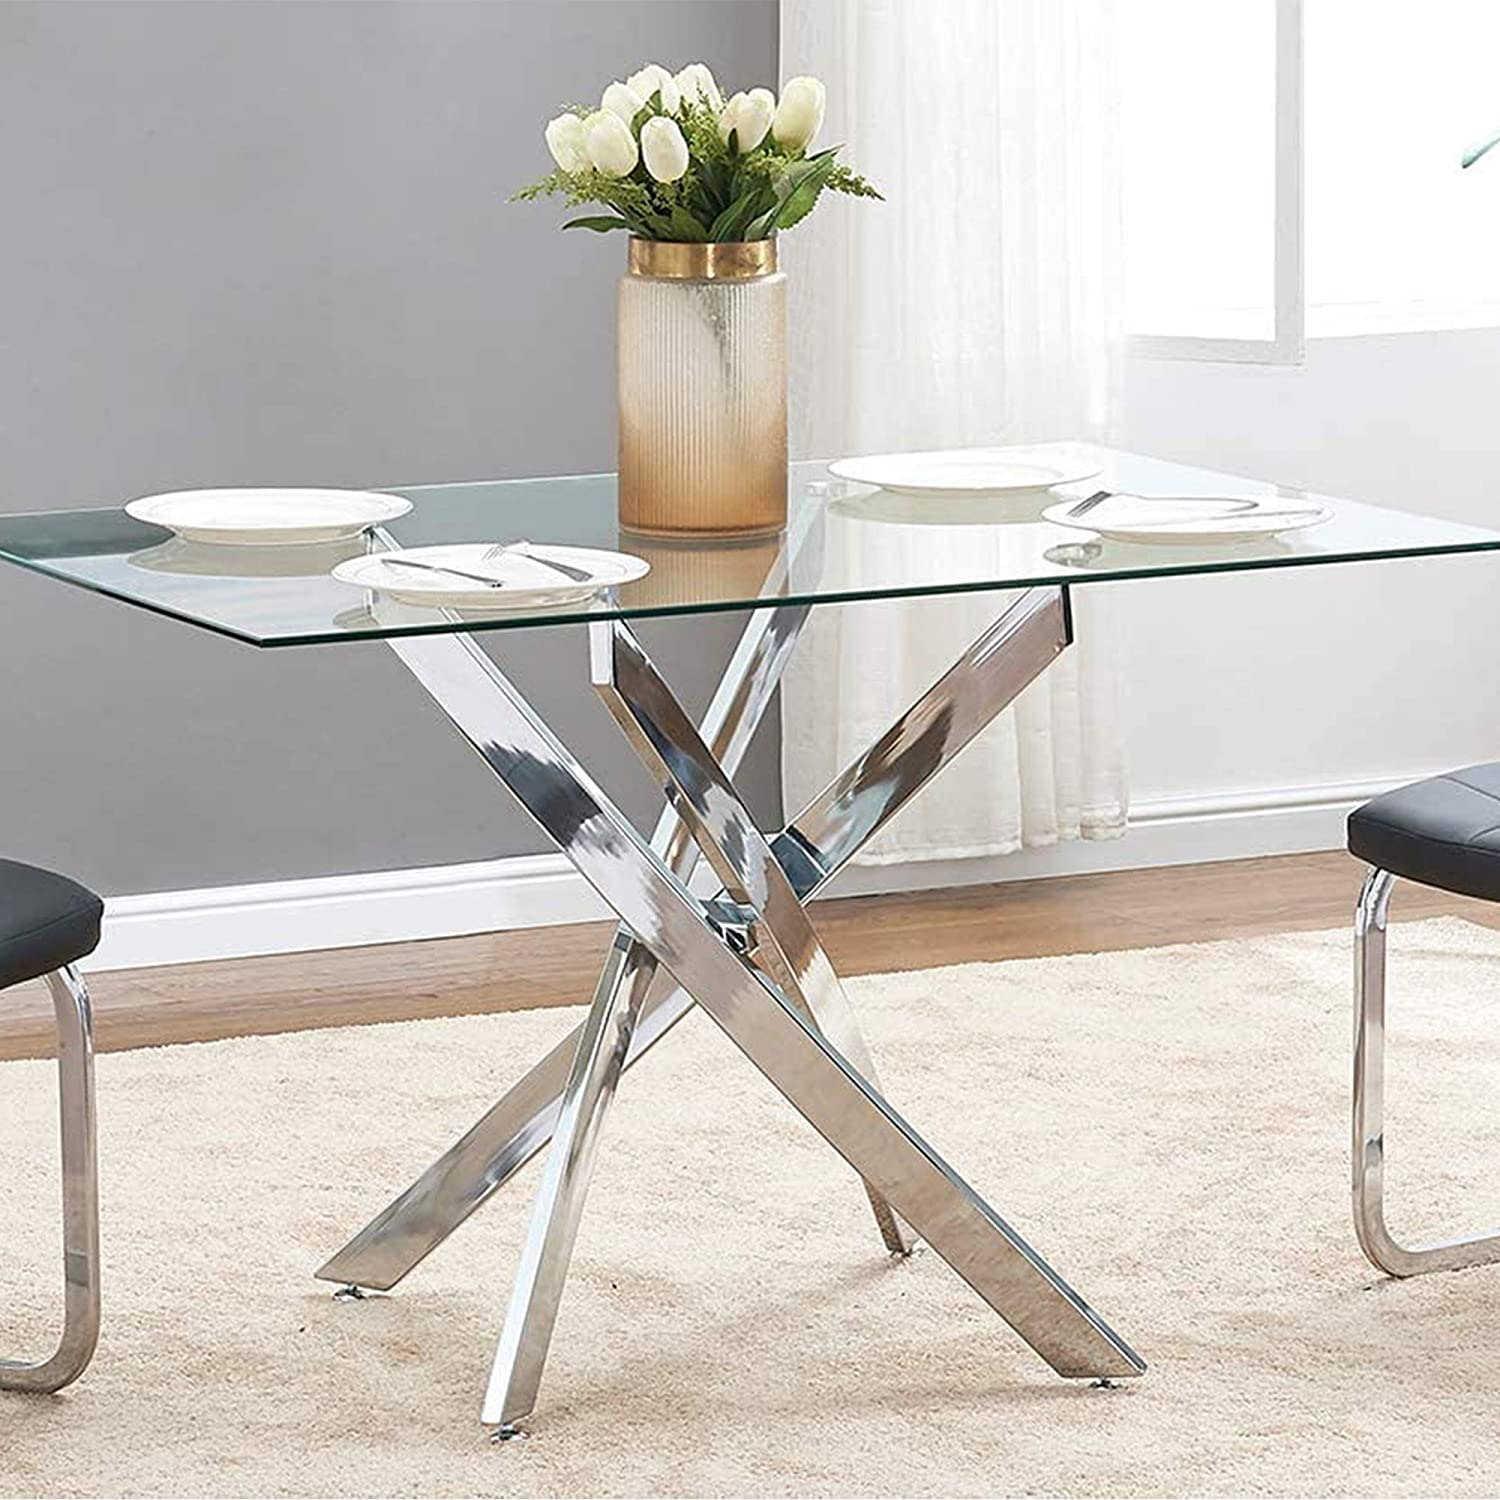 Tonvision Tory Clear Glass Table Rectangle Top Curved Legs 4 6 Seater Chrome Dining Table For Modern Kitchen Room Small Rectangular Area Amazon Co Uk Kitchen Home